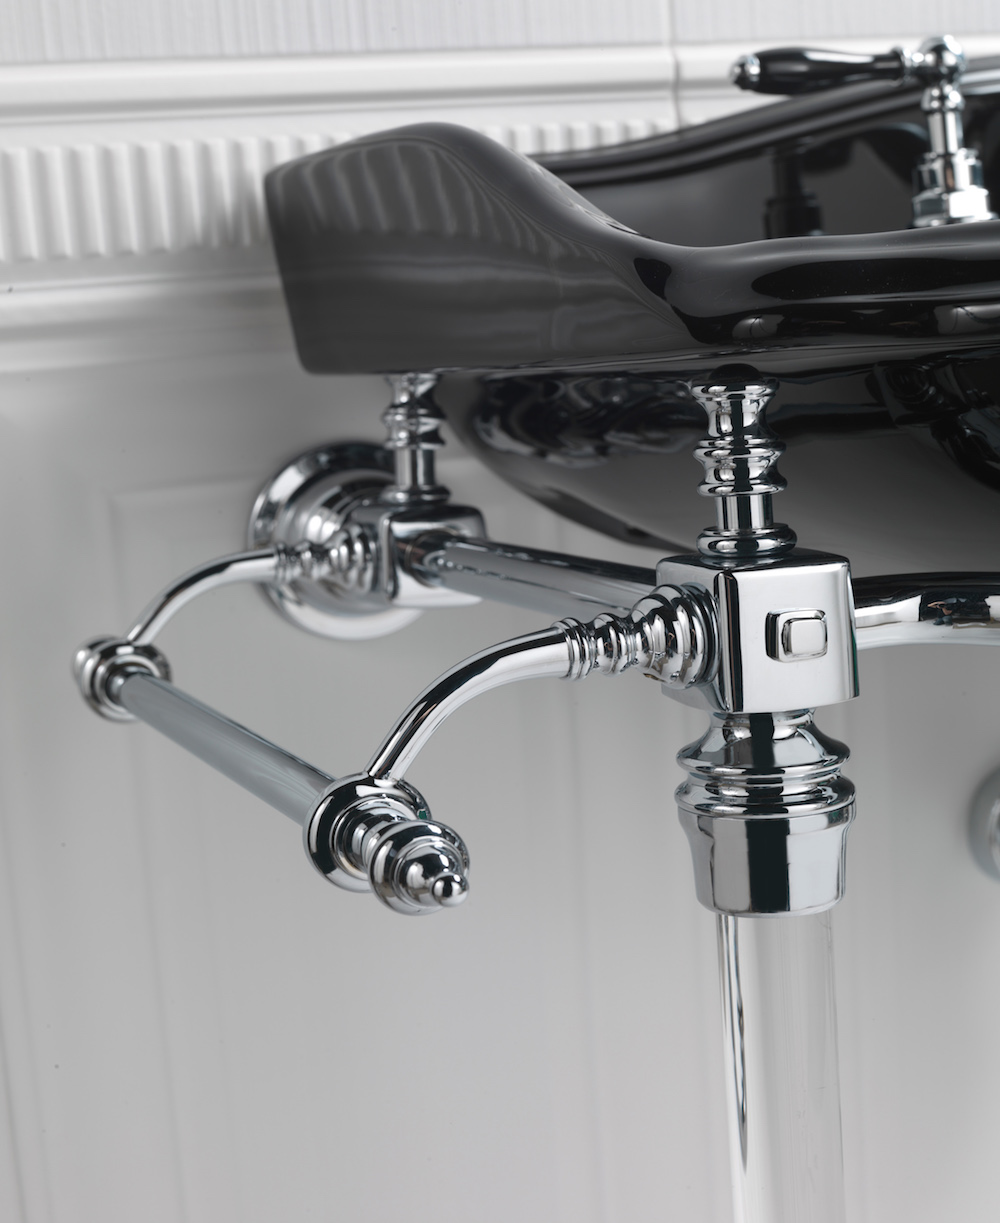 Image caption: Drift Hardwick basin stand by Imperial Bathrooms